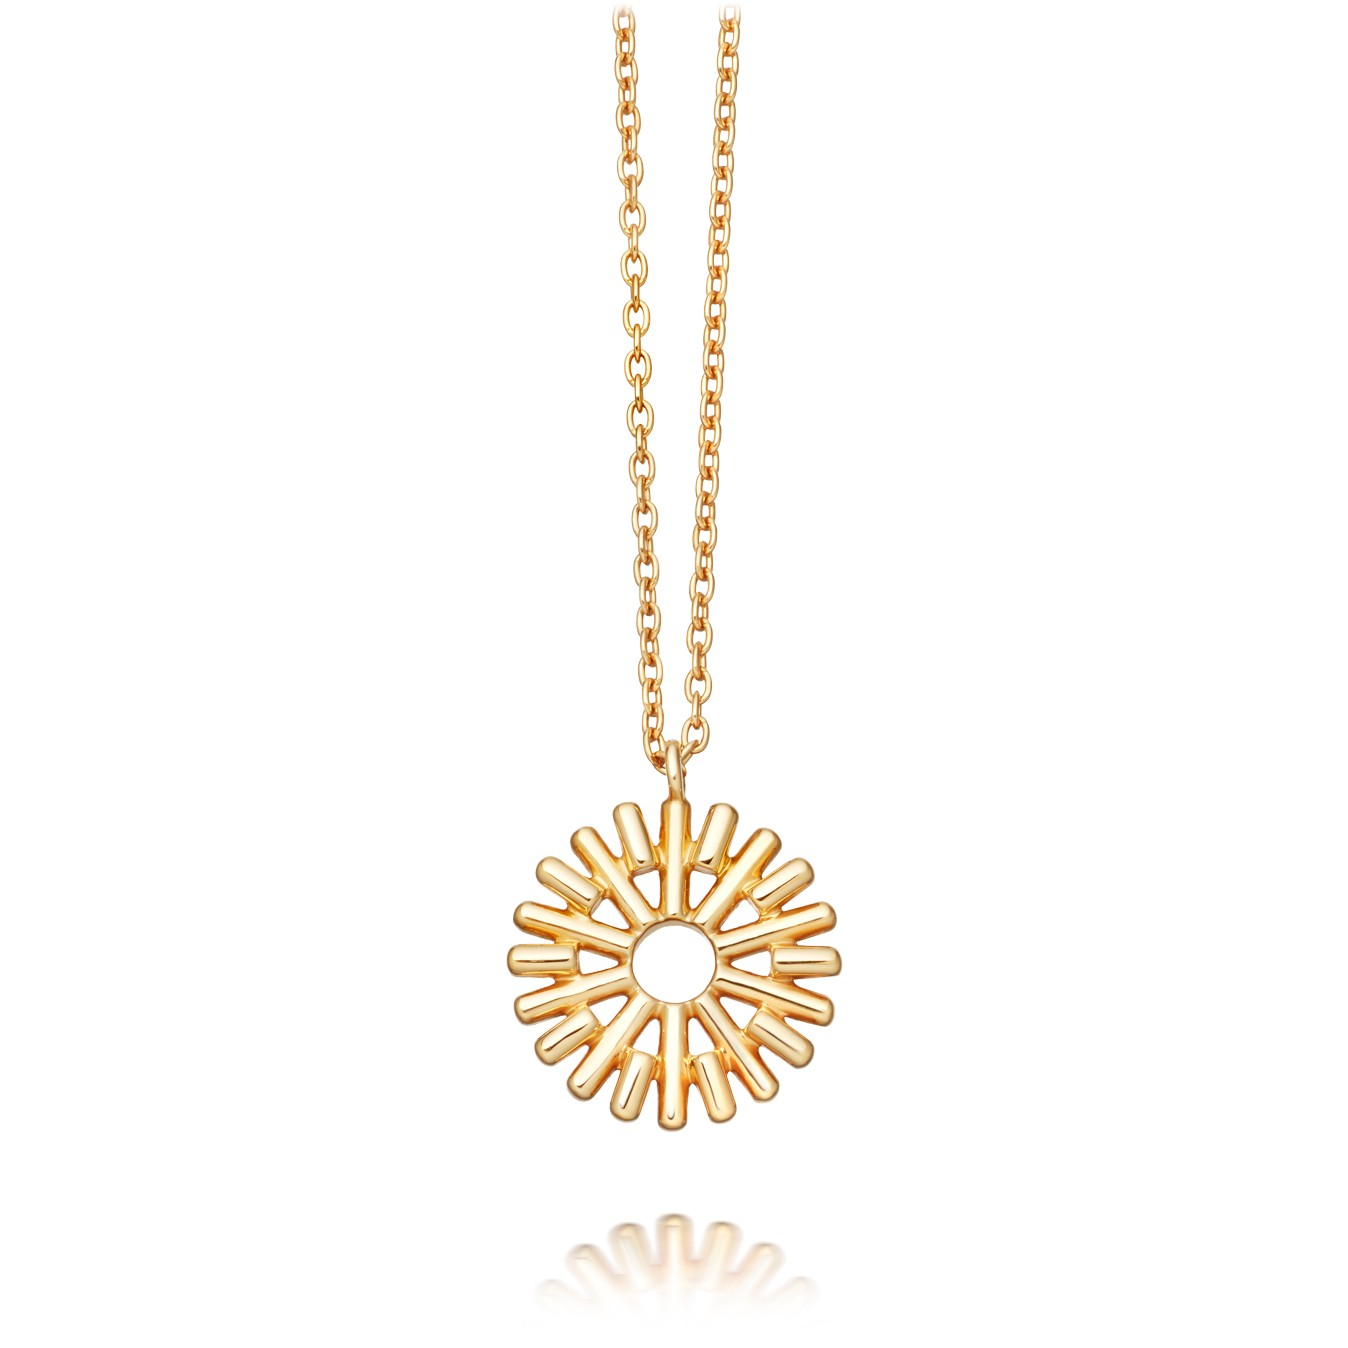 Astley Clarke Sun Ray Pendant - British luxury jewellery - UK style blog